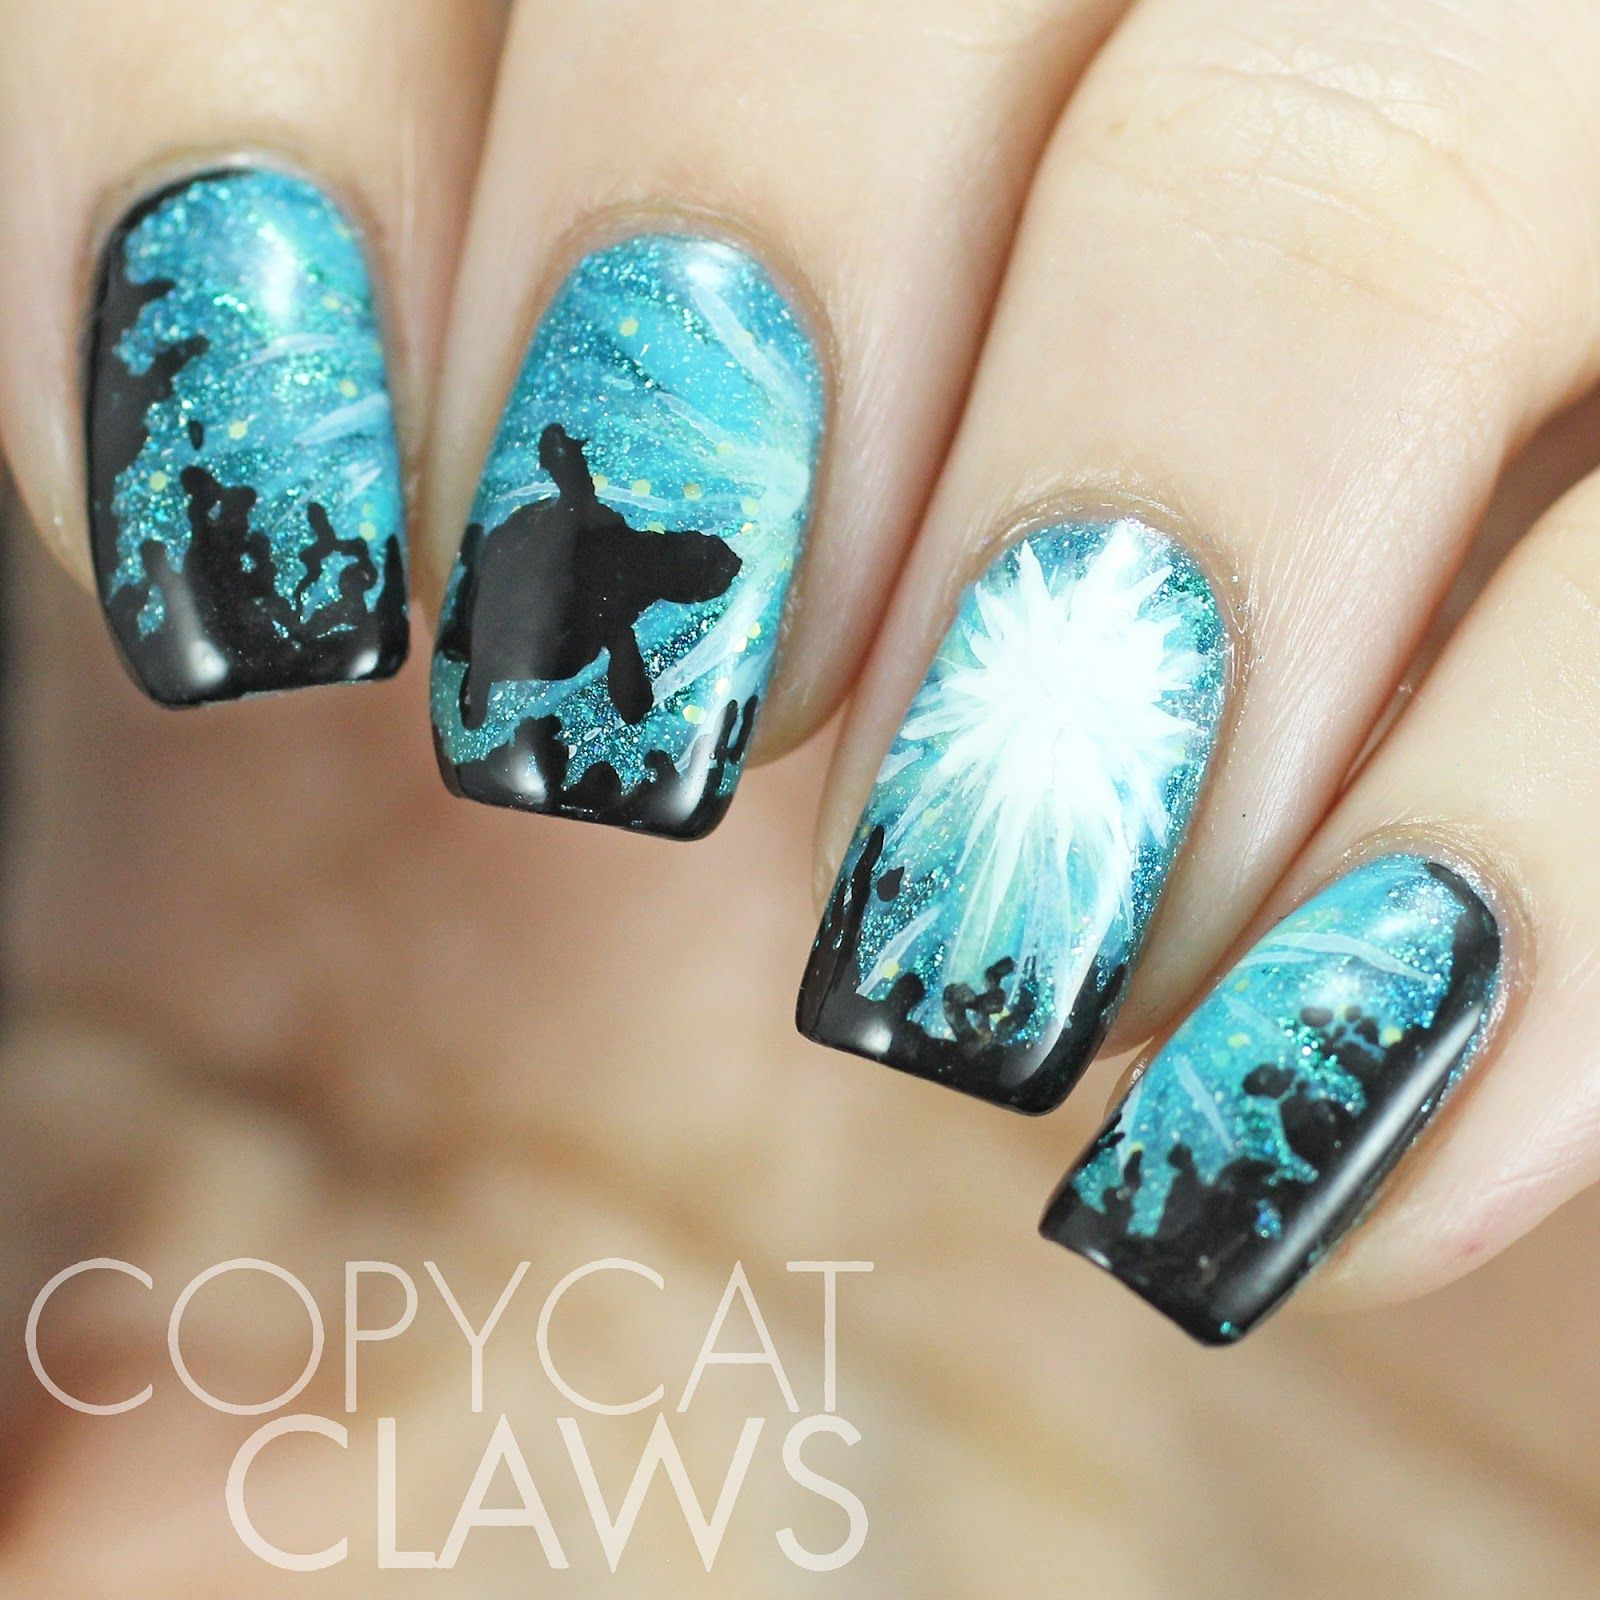 Copycat Claws Blue Color Block Nail Art: Copycat Claws: The Digit-al Dozen Does Nature: Day 1 Sea